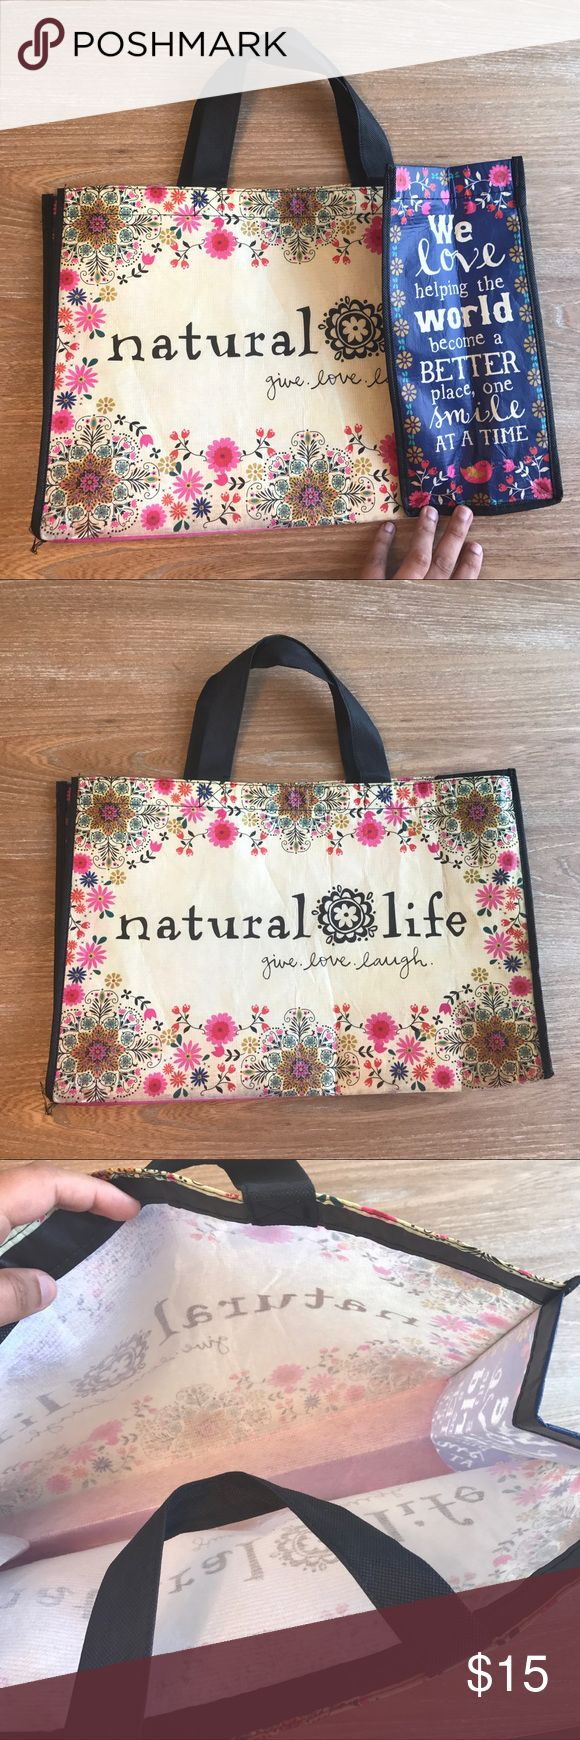 NATURAL LIFE BIG TOTE 💗Condition: EUC, No flaws, no rips, holes or stains. 💗Smoke free home/Pet hair free 💗No trades, No returns. No modeling  💗 If you want to resell the item, yes, you are allowed to use my photos. 💗Shipping next day. Beautiful package! 💗ALL ITEMS ARE OWNED BY ME. NOT FROM THRIFT STORES 💗All transactions video recorded to ensure quality.  💗Ask all questions before buying NATURAL LIFE Bags Totes